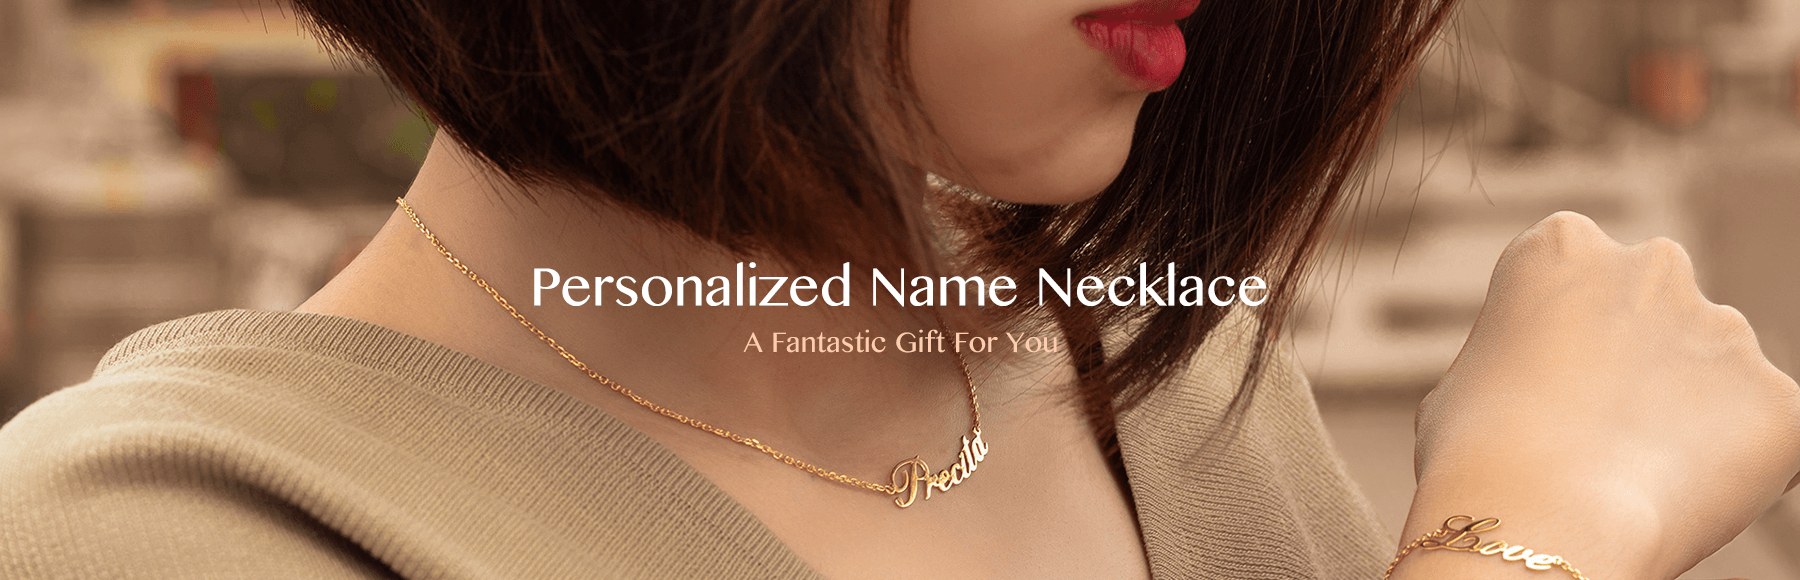 69f2c25ad0fc5 Name Necklace Official | Name Necklace, Custom Name Necklace